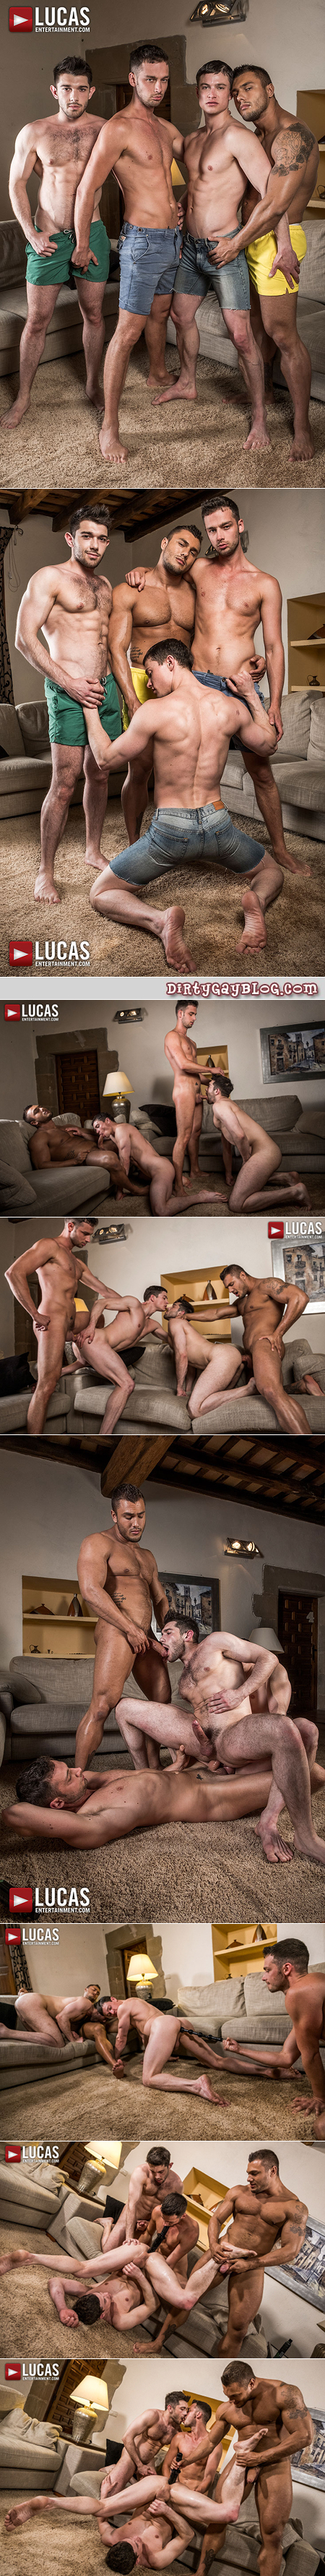 Gay group sex featuring sex toys, double penetration and bareback.